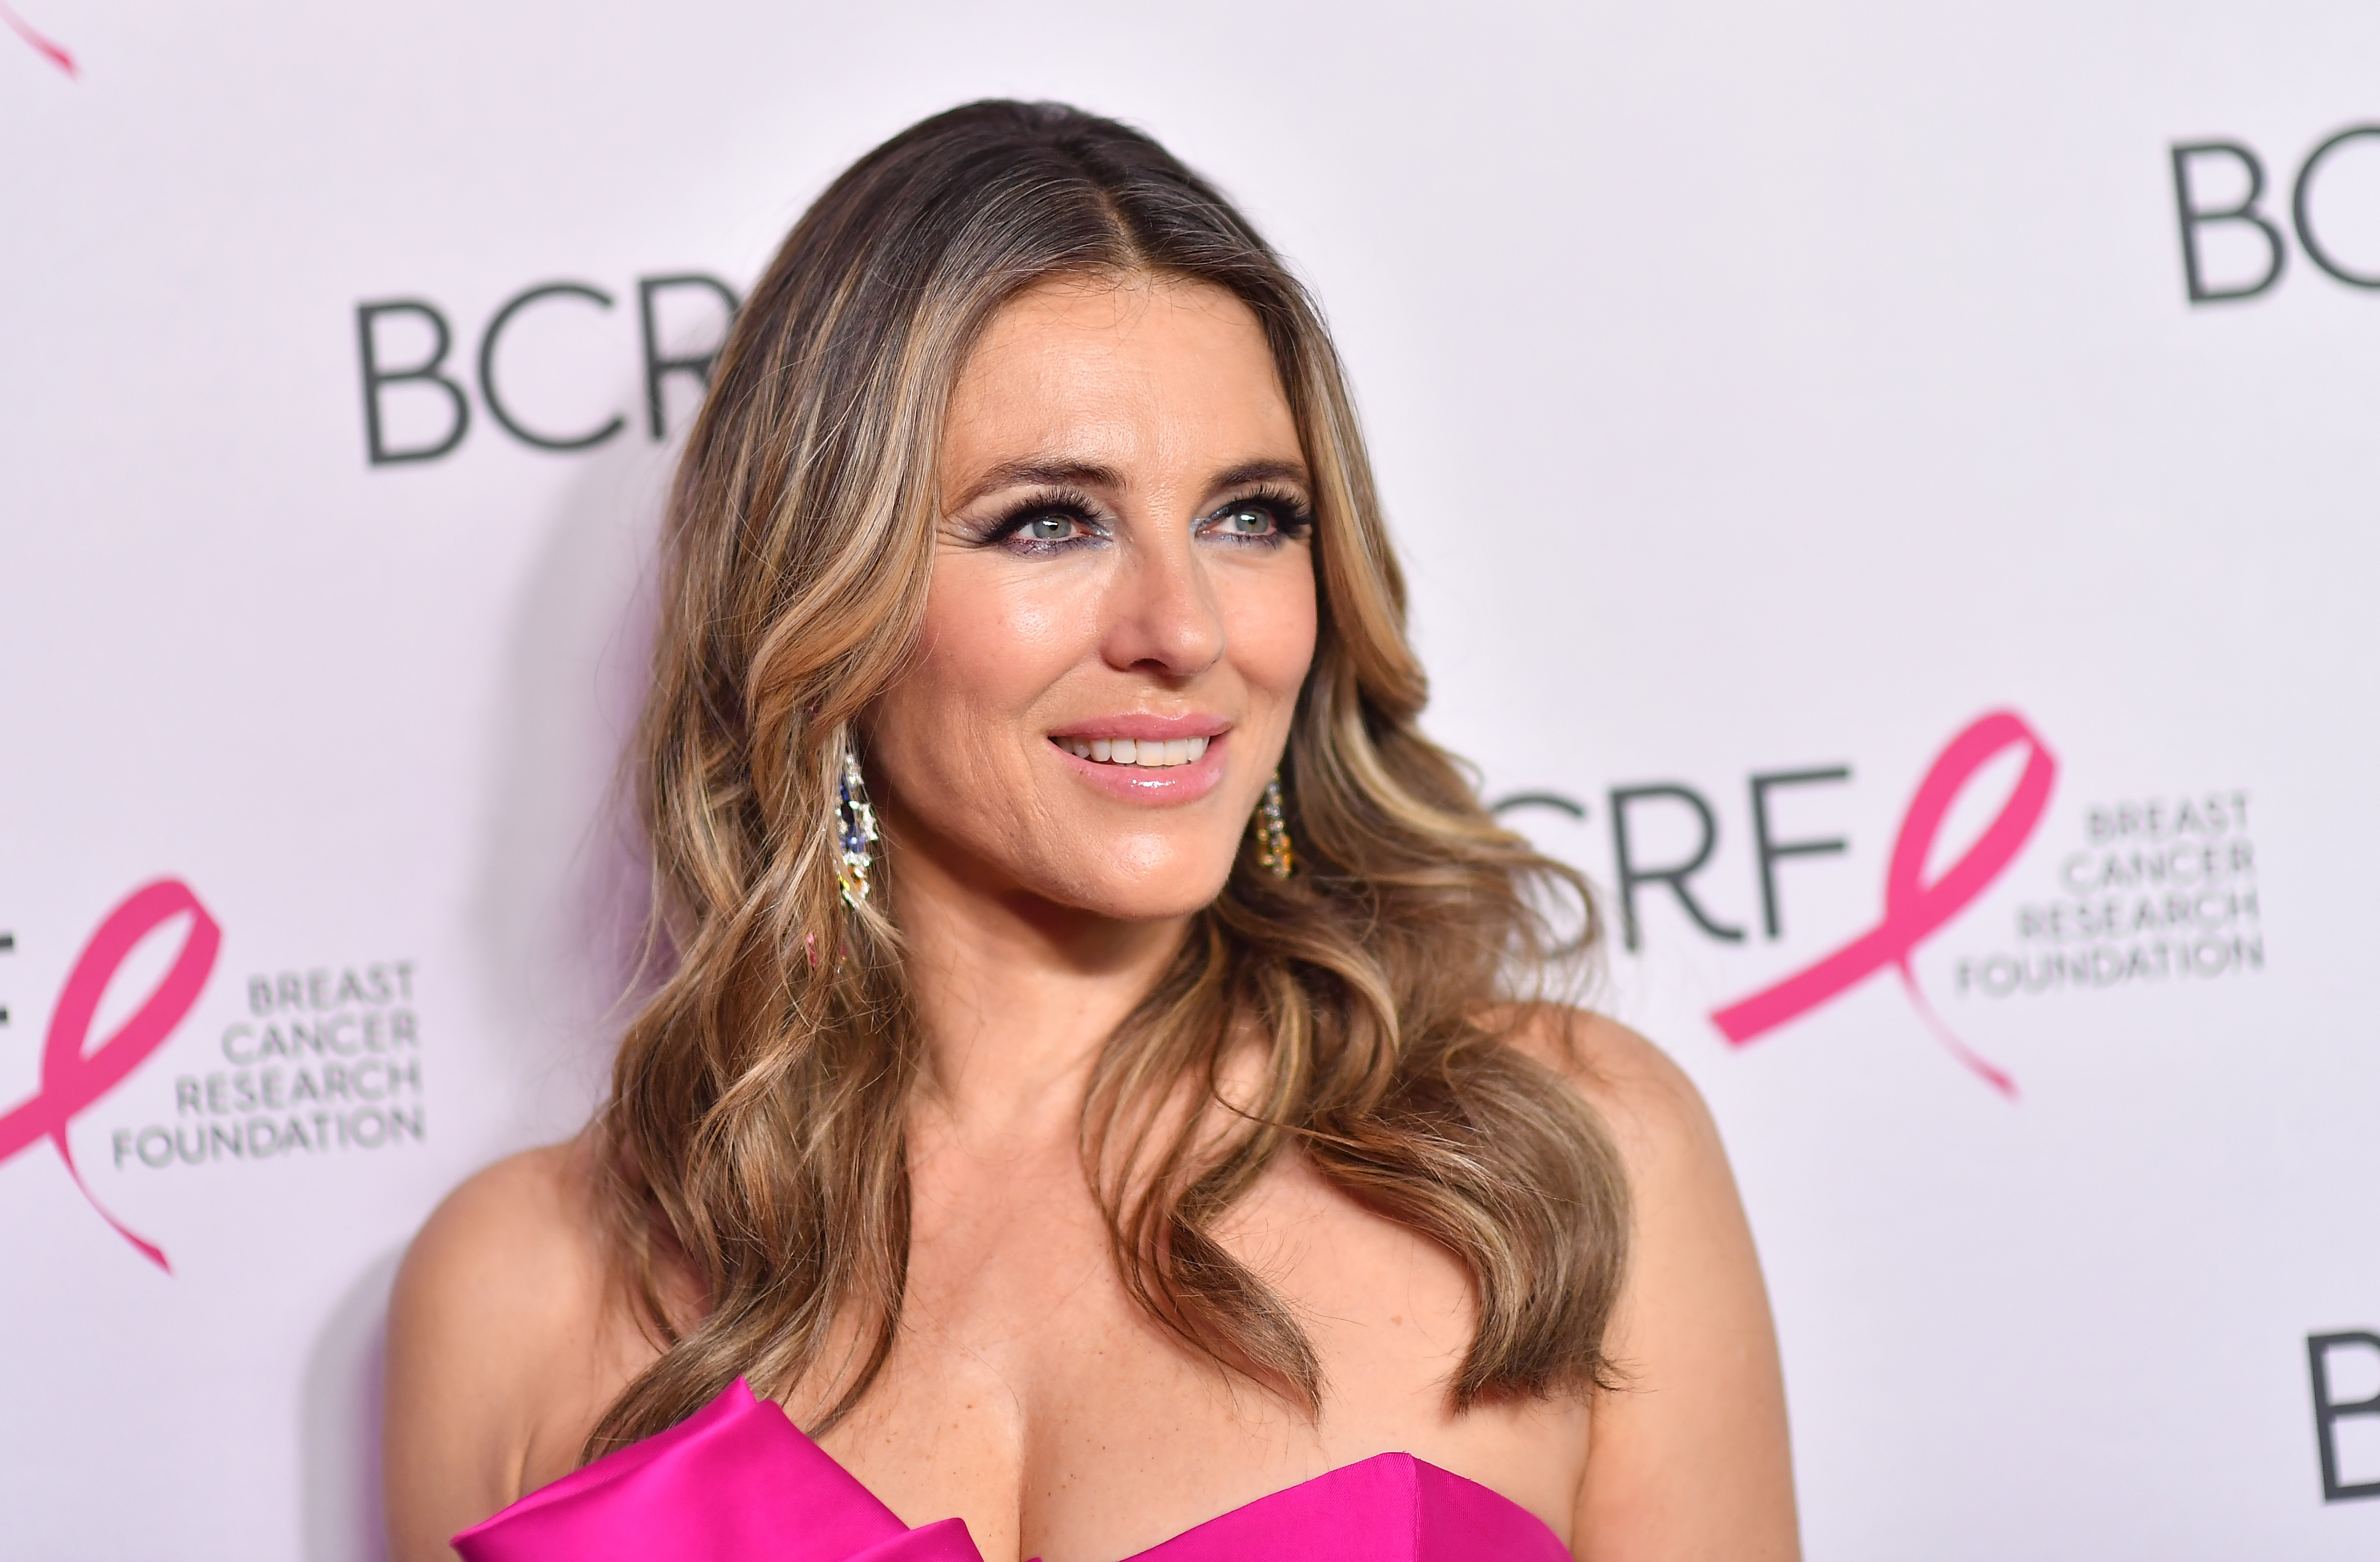 Elizabeth Hurley, 55, and her sister Kate are bikini babes. (Photo: ANGELA WEISS/AFP via Getty Images)